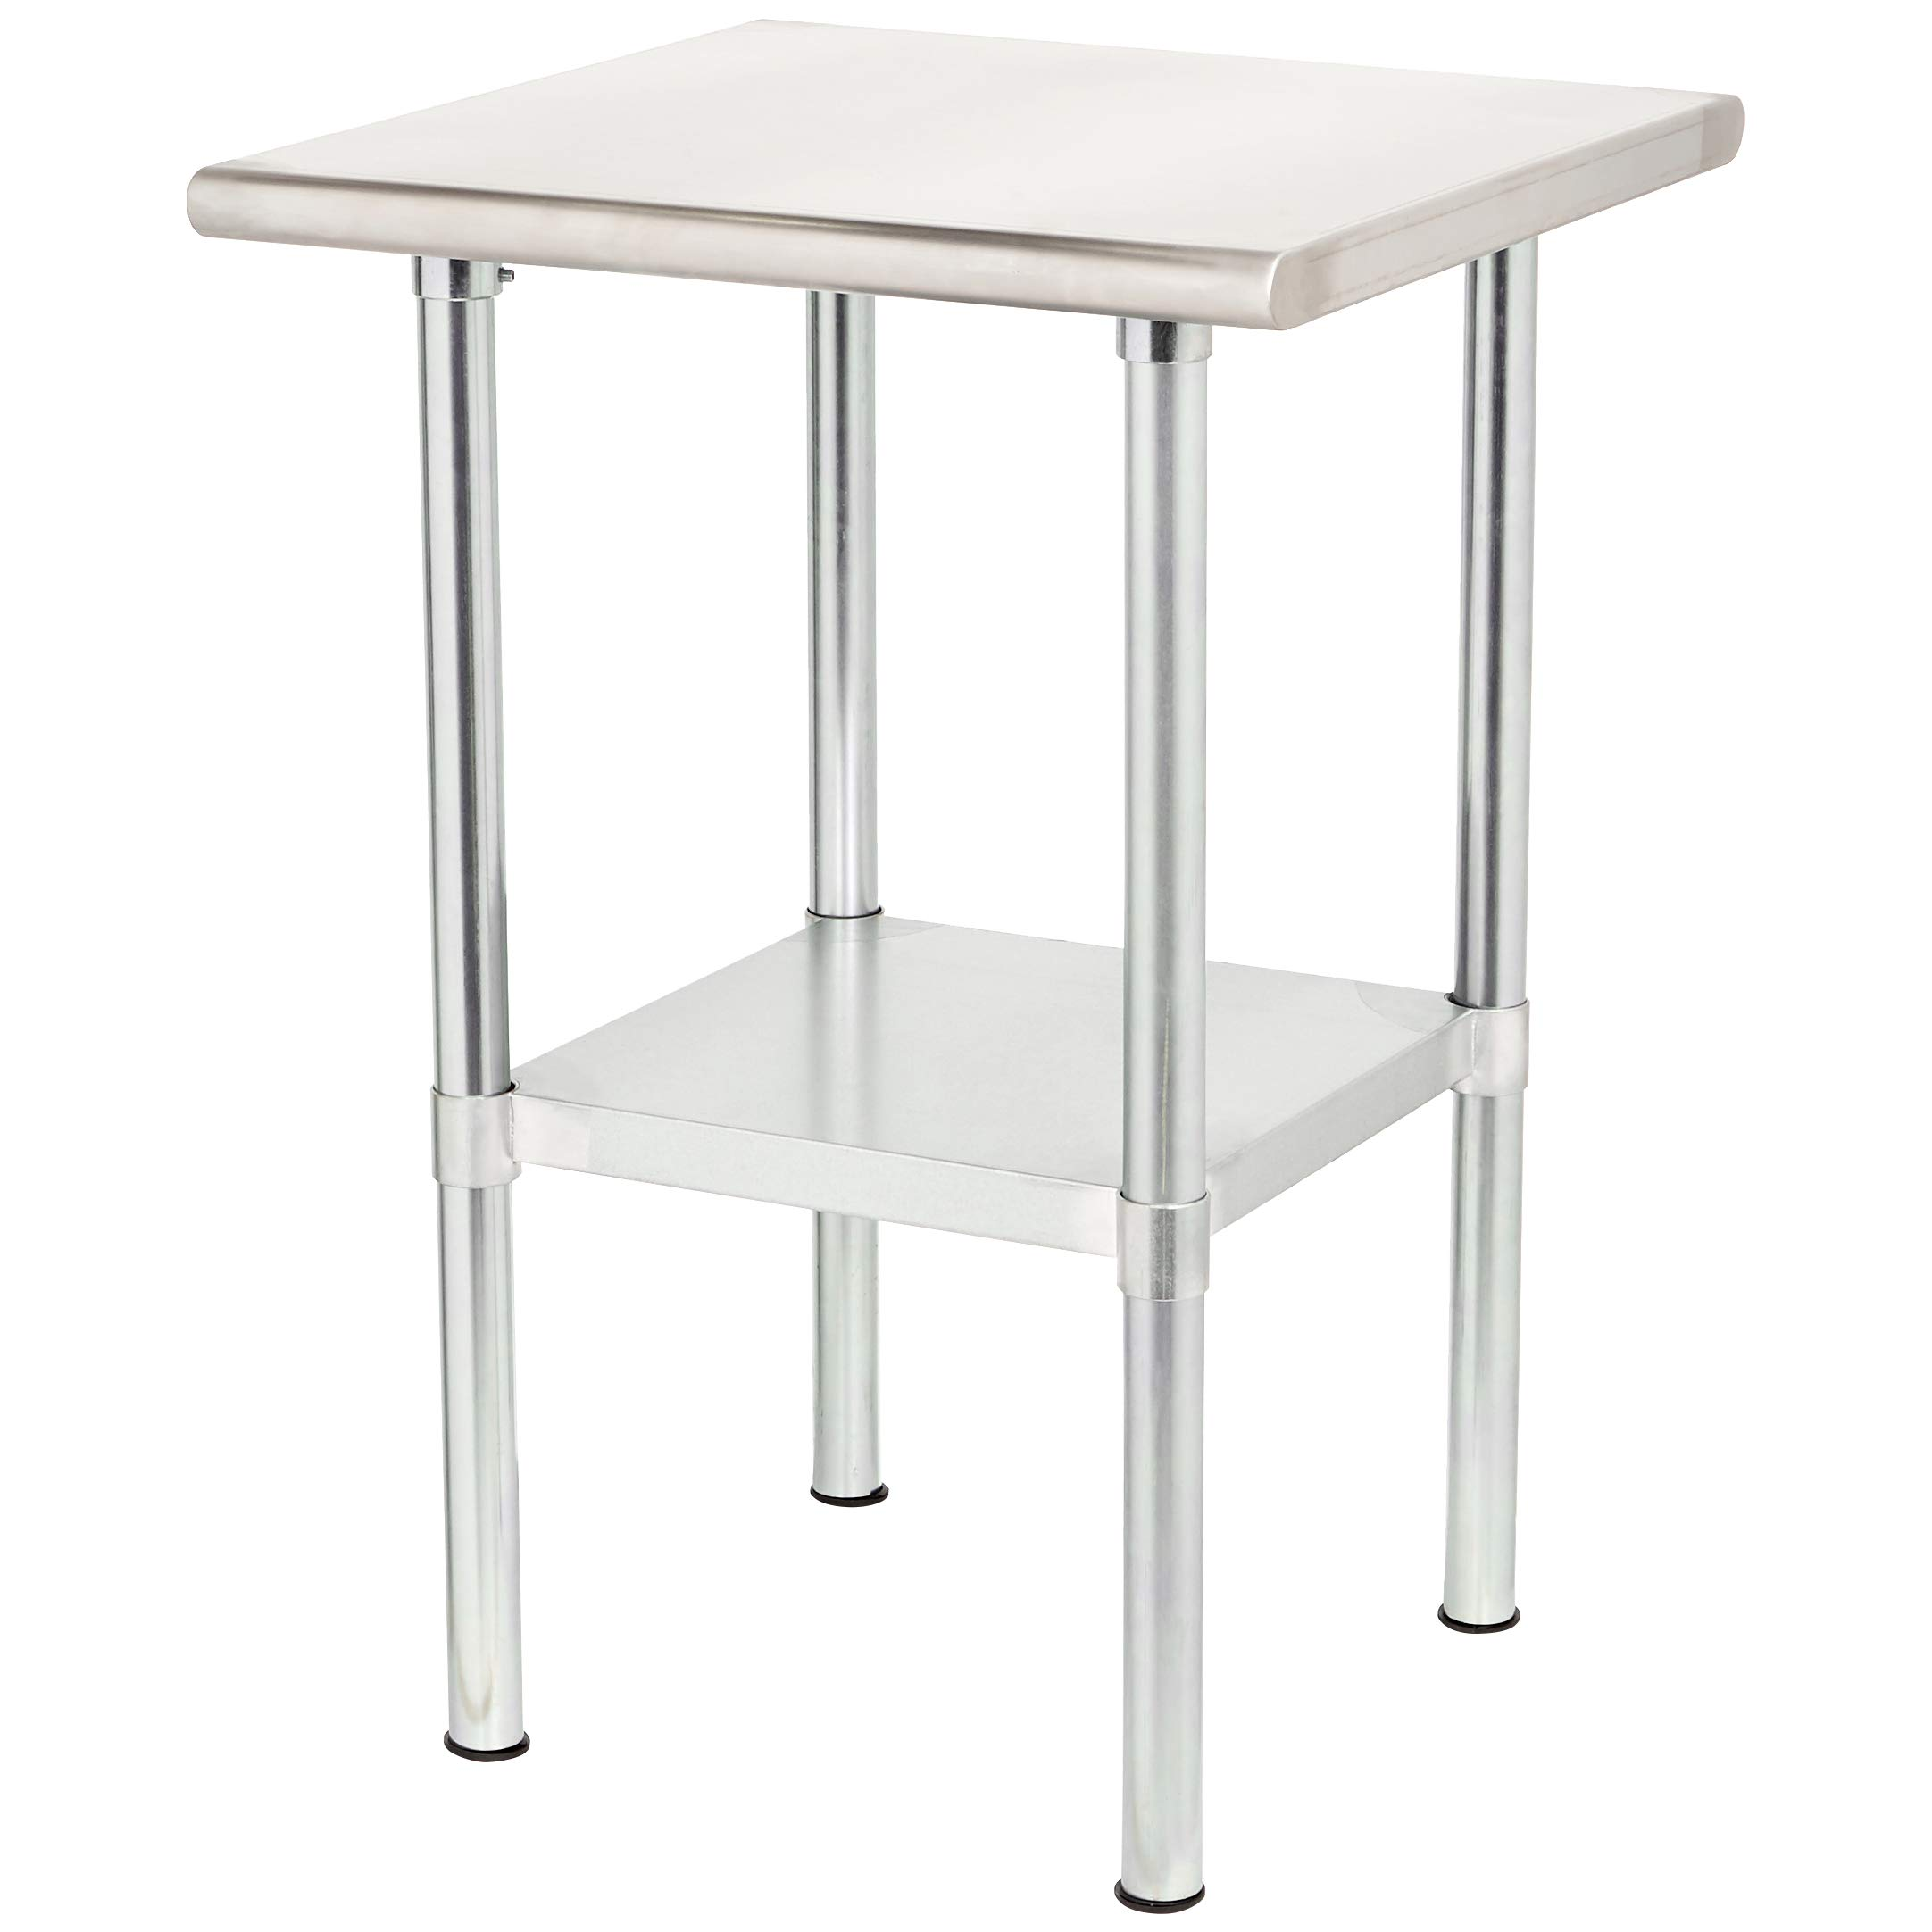 Rockpoint Carmona Tall NSF Stainless-Steel Kitchen Work Table with Adjustable Shelf by ROCKPOINT